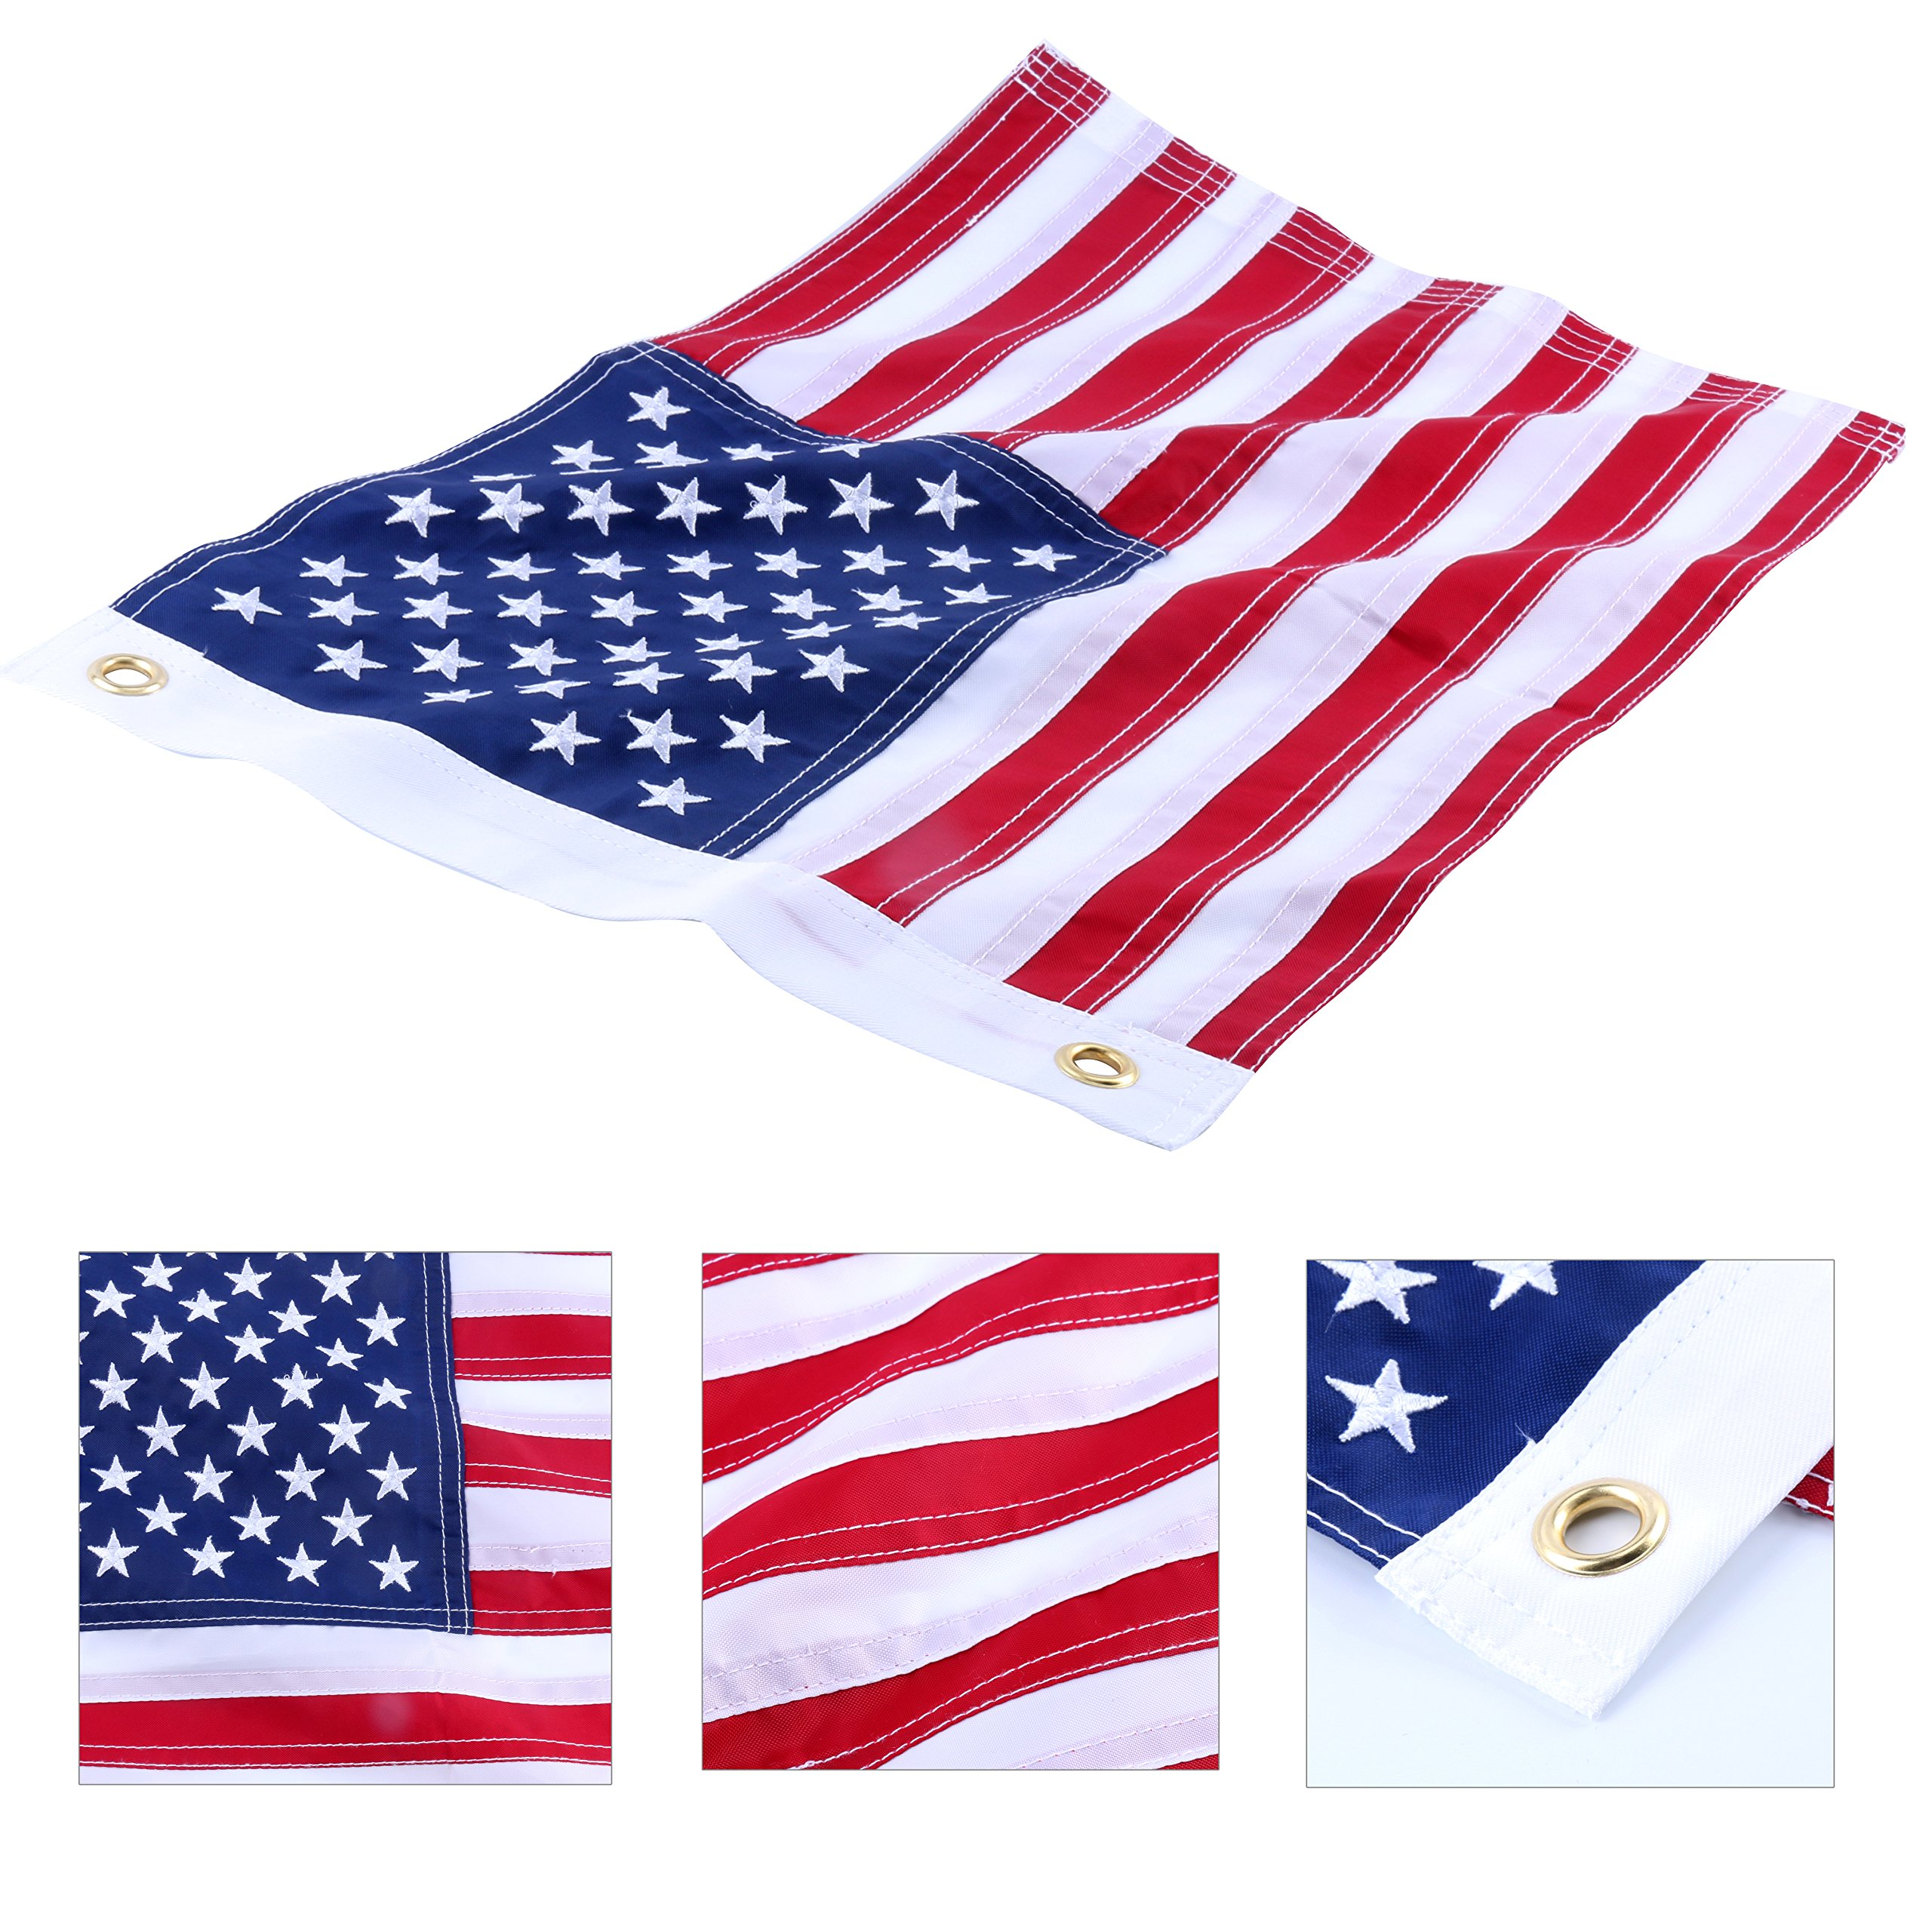 Amarine-made12x18 Inch Yacht Boat Ensign Nautical US American Flag With Sewn Stripes and Embroidered Stars -45CM(18Inch)30CM(12Inch)For Boat, yacht, Workplace ,Home, Business & Outdoor Use